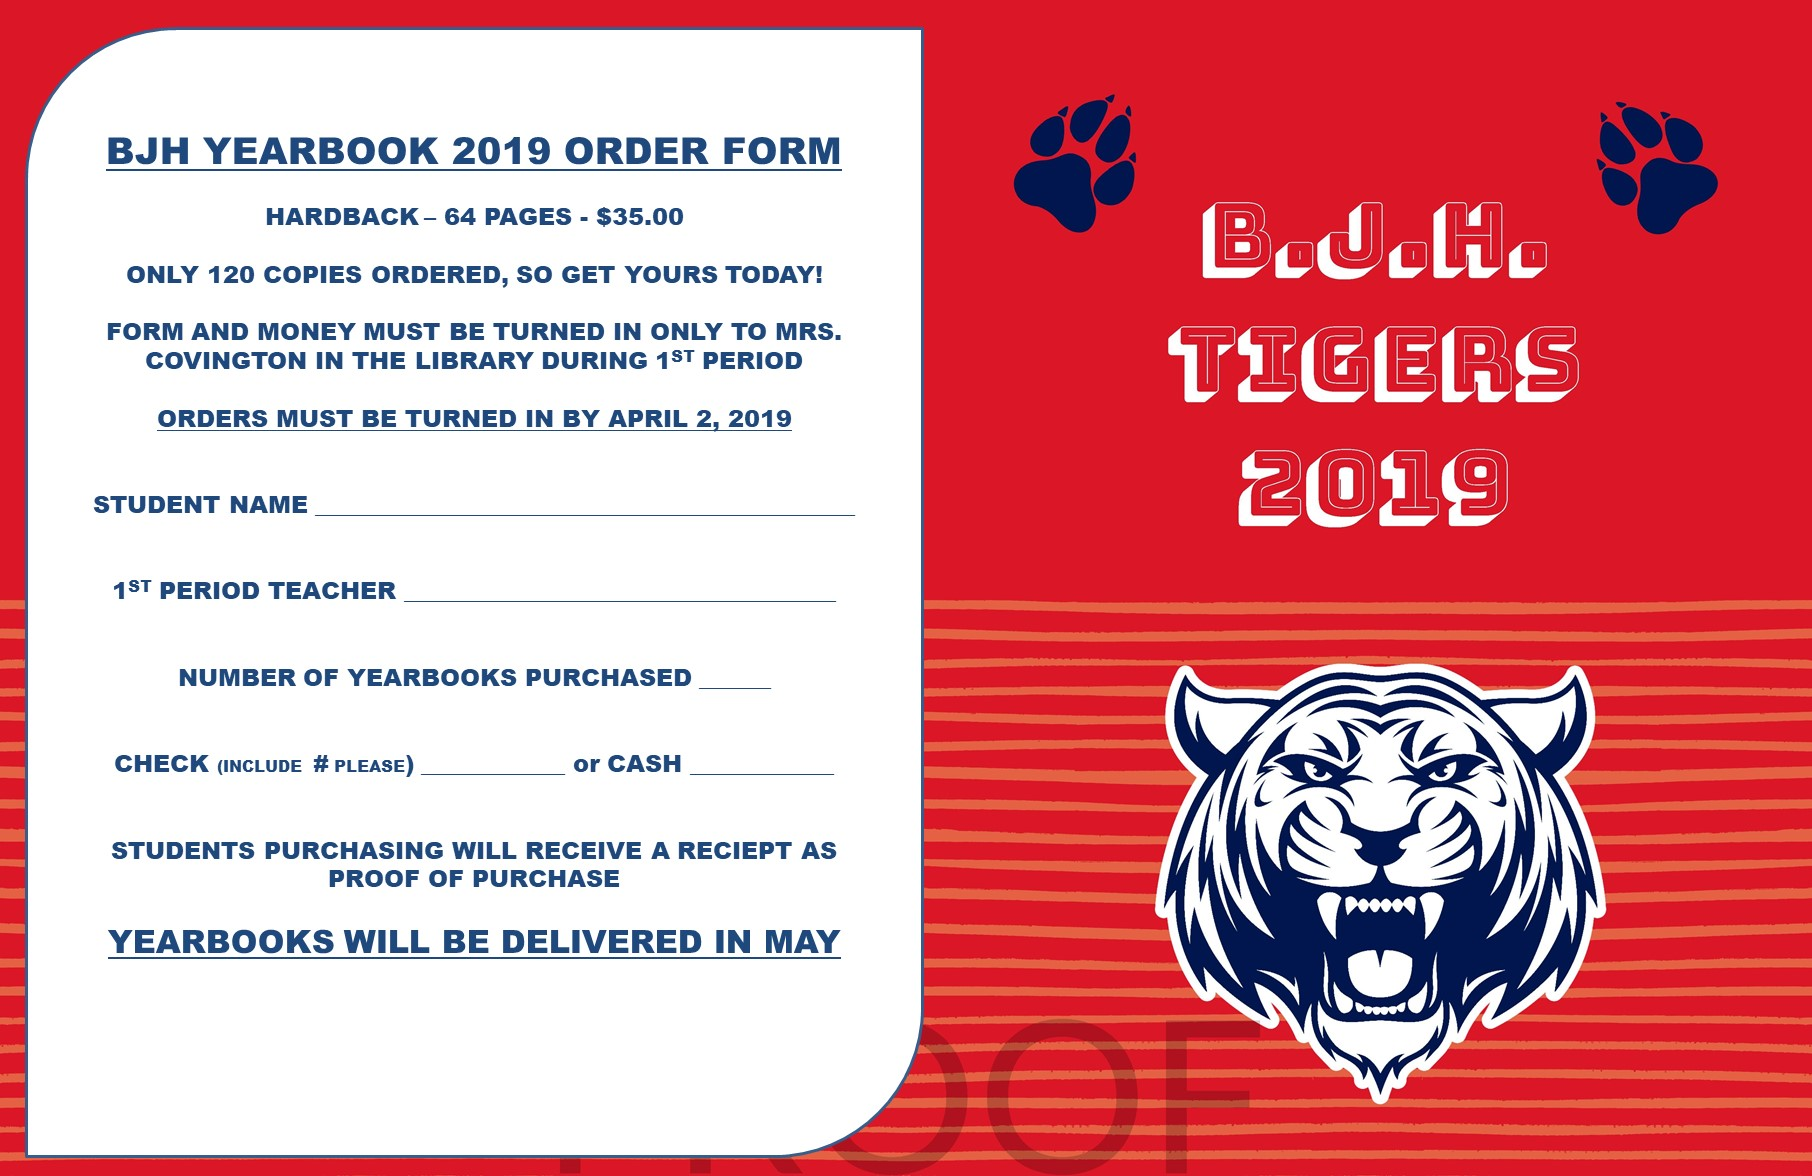 BJHS yearbooks on sale now through April 2